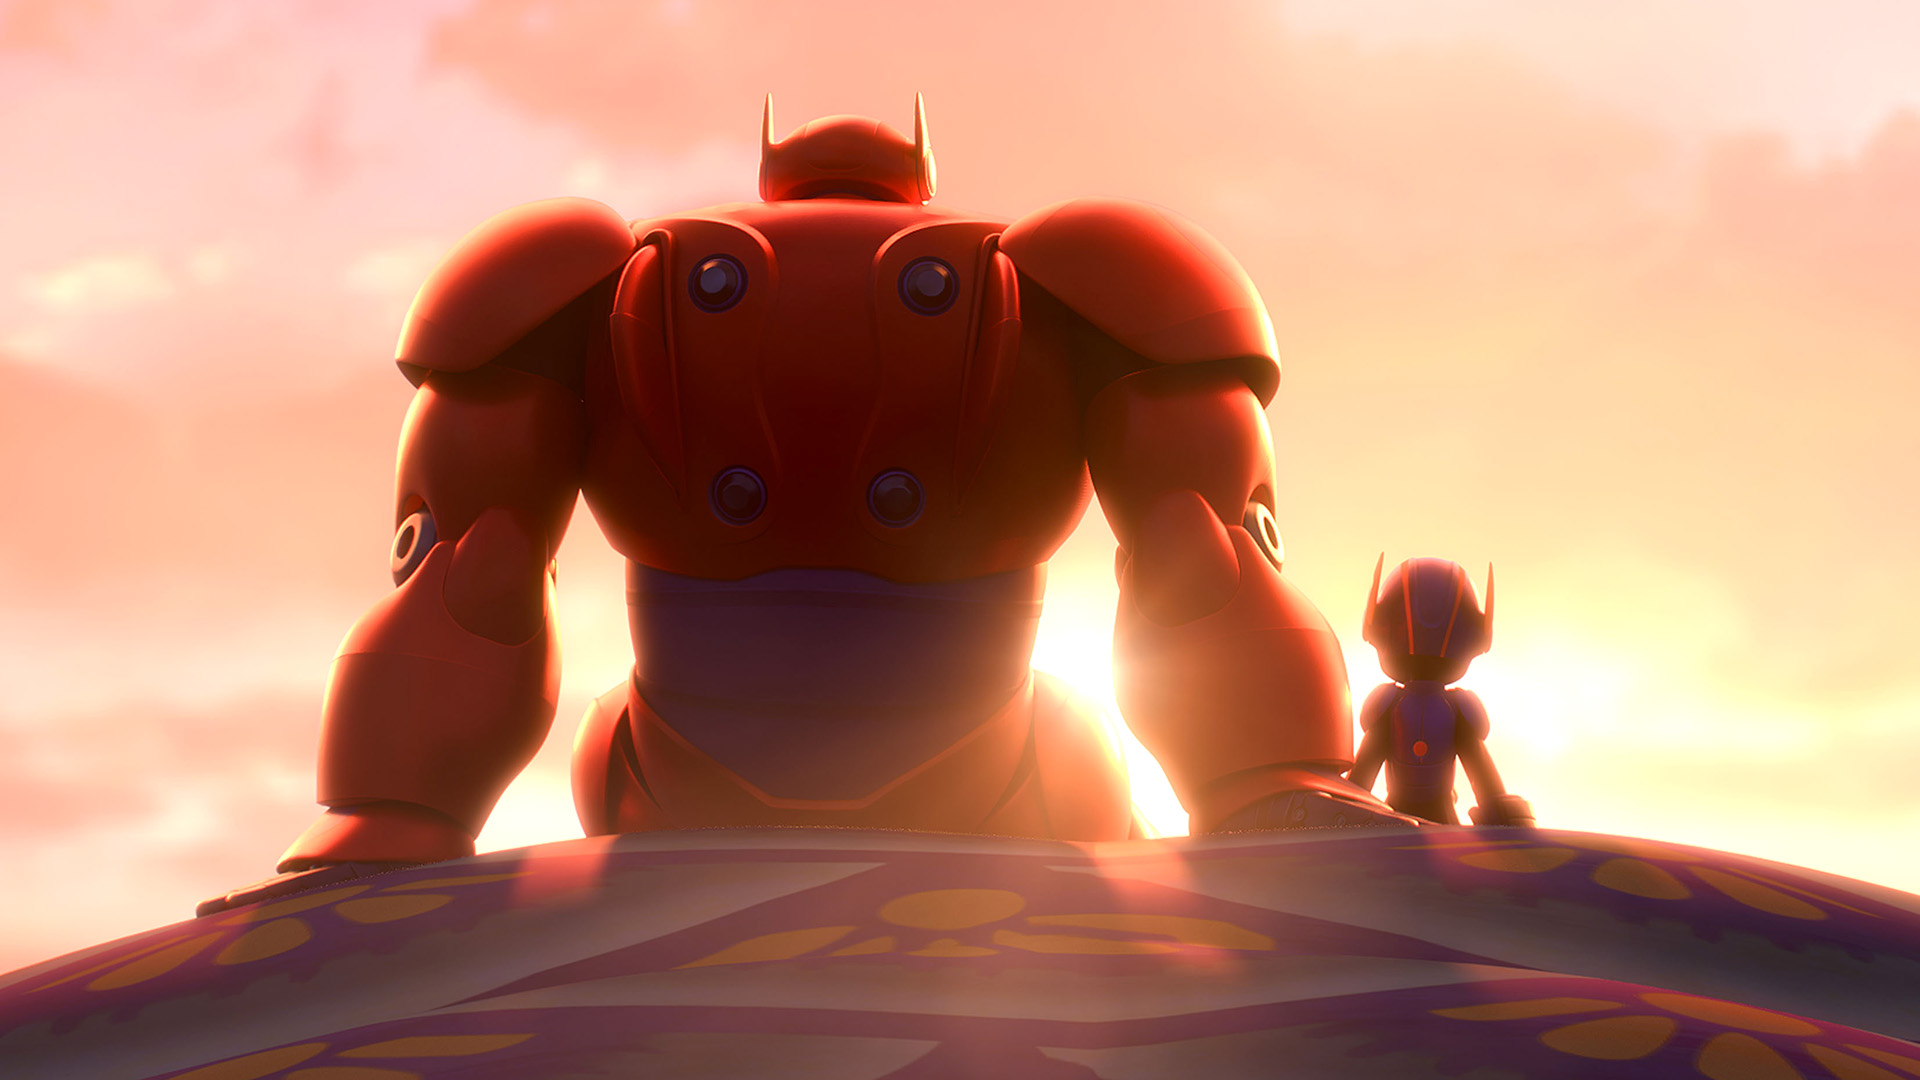 Big Hero 6 Wallpapers Pictures Images 1920x1080